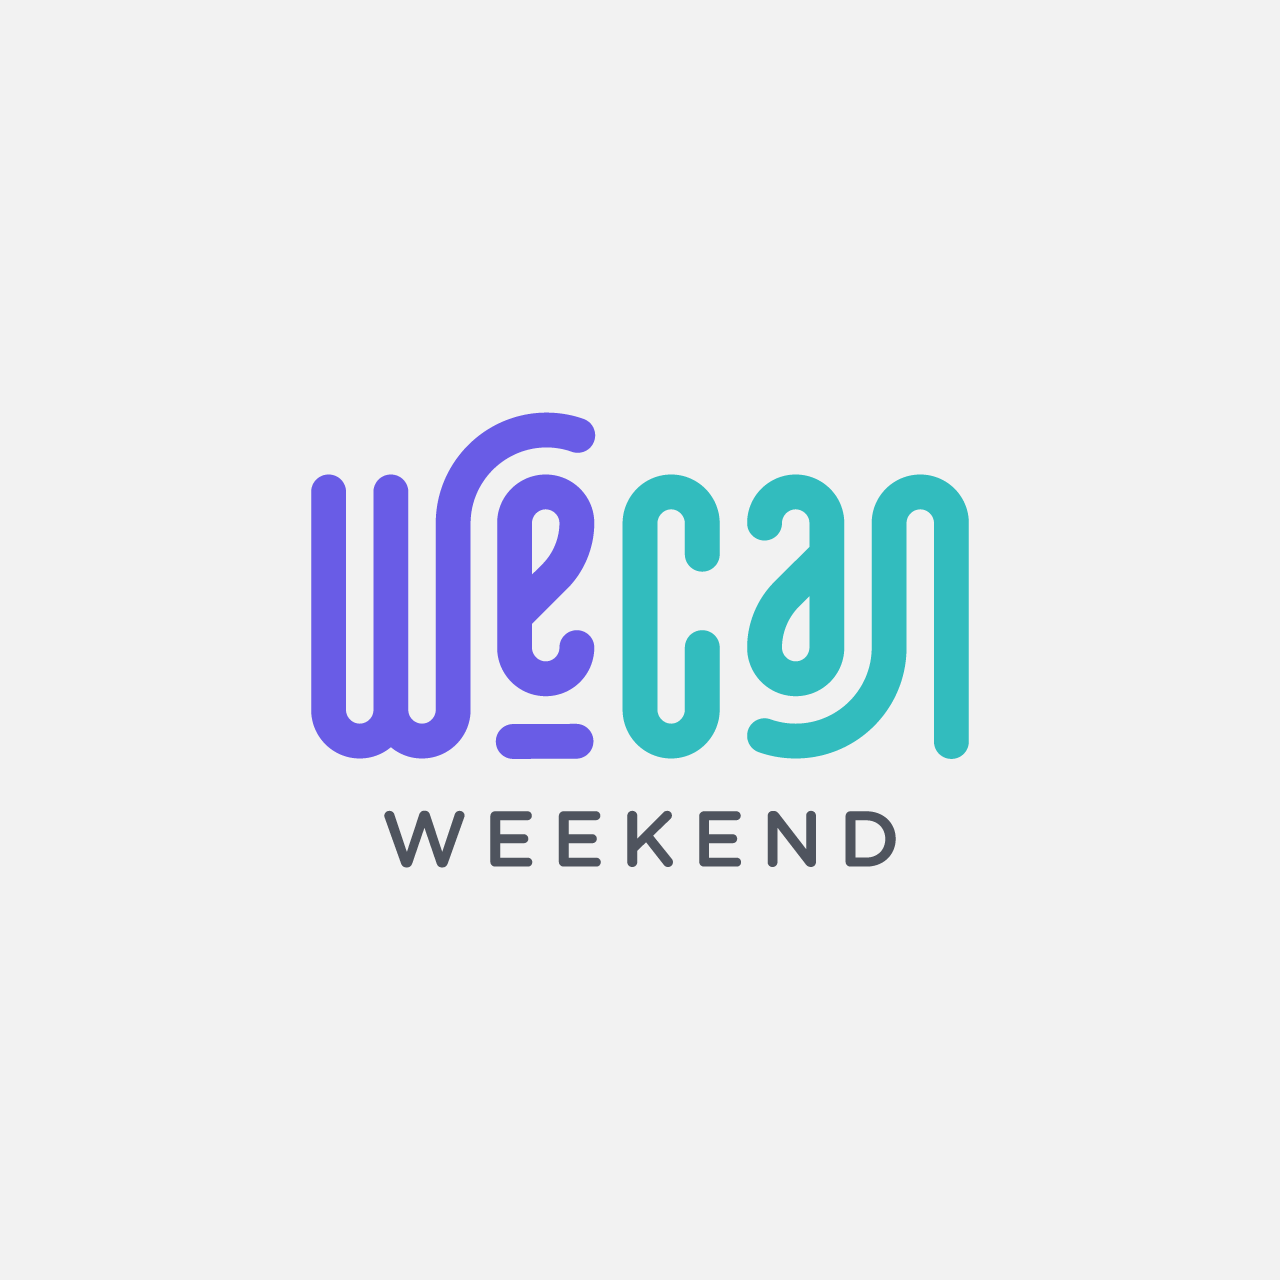 wecan-weekend_logo.png